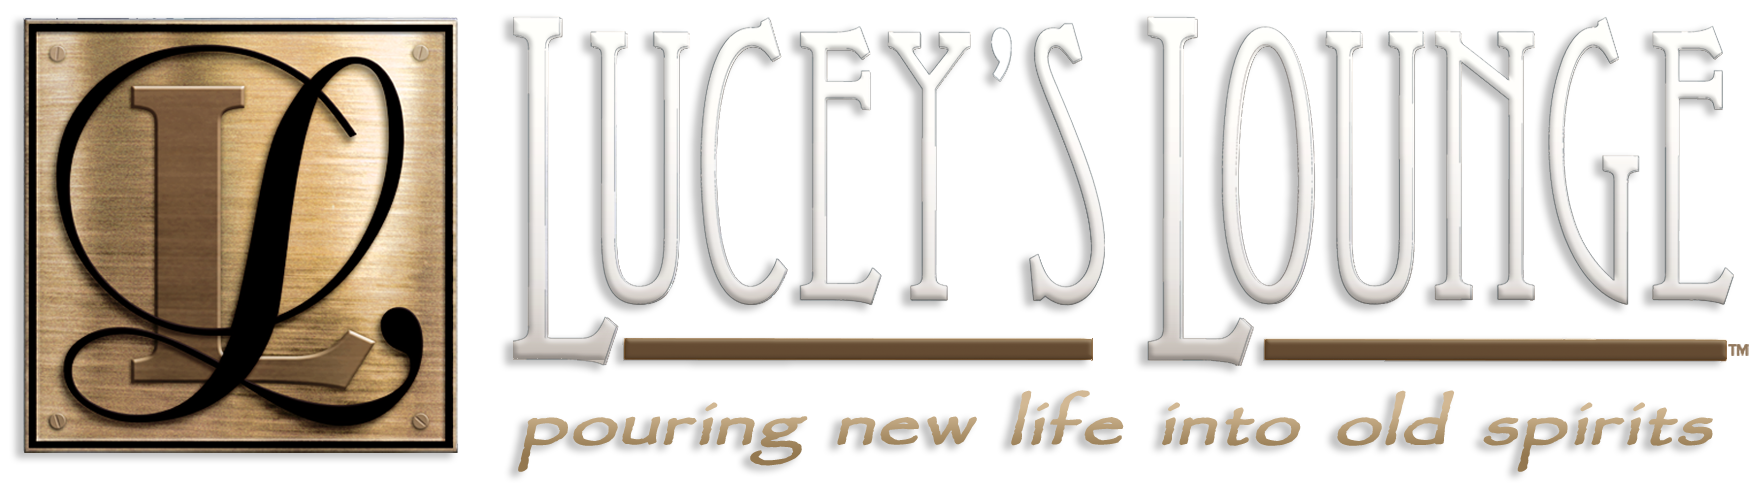 Lucey's Lounge